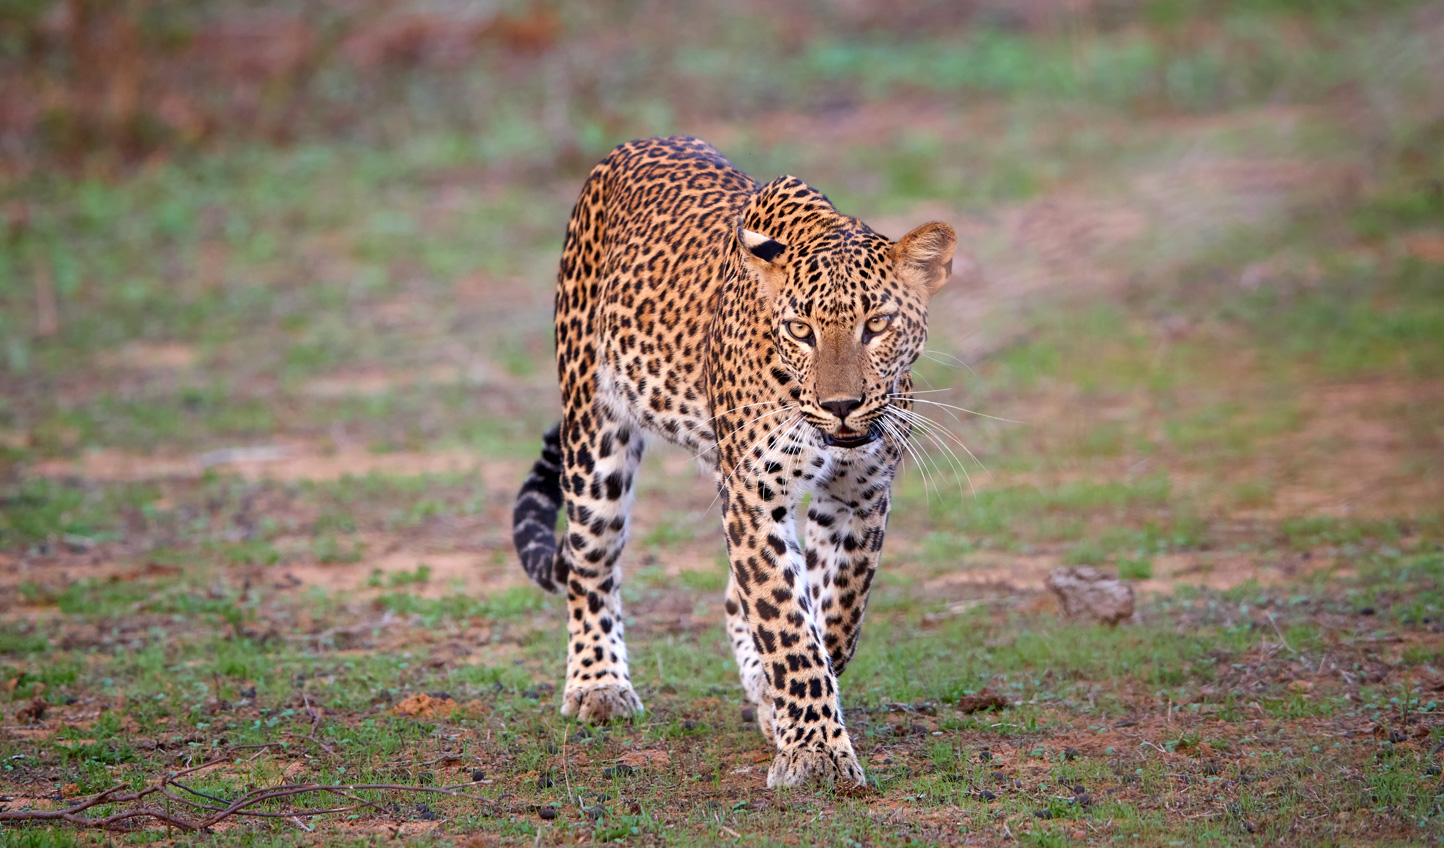 Head out in search of leopards in Yala